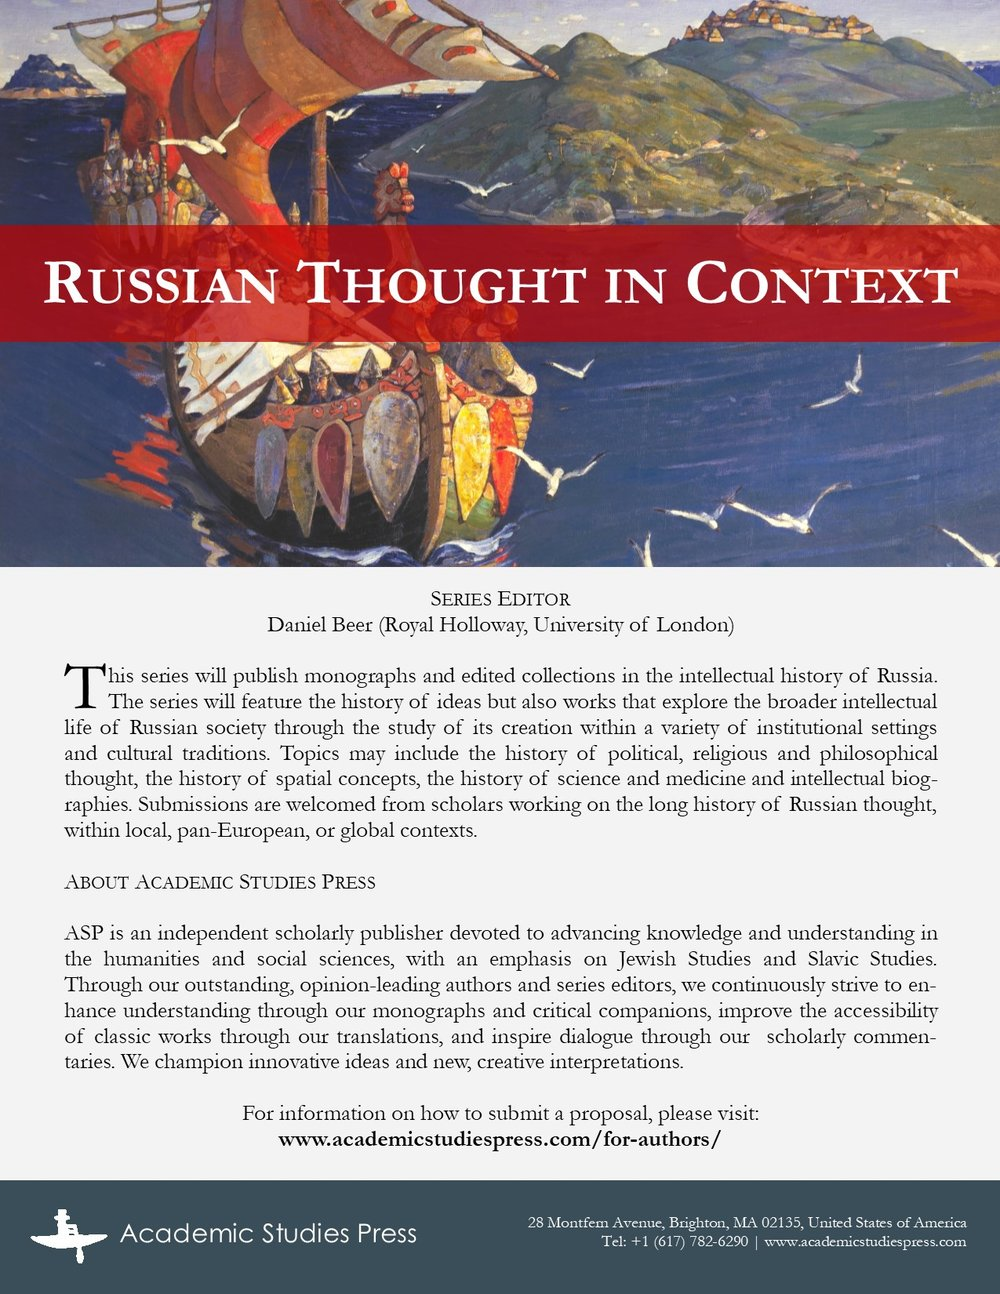 Russian Thought in Context Flyer.jpg